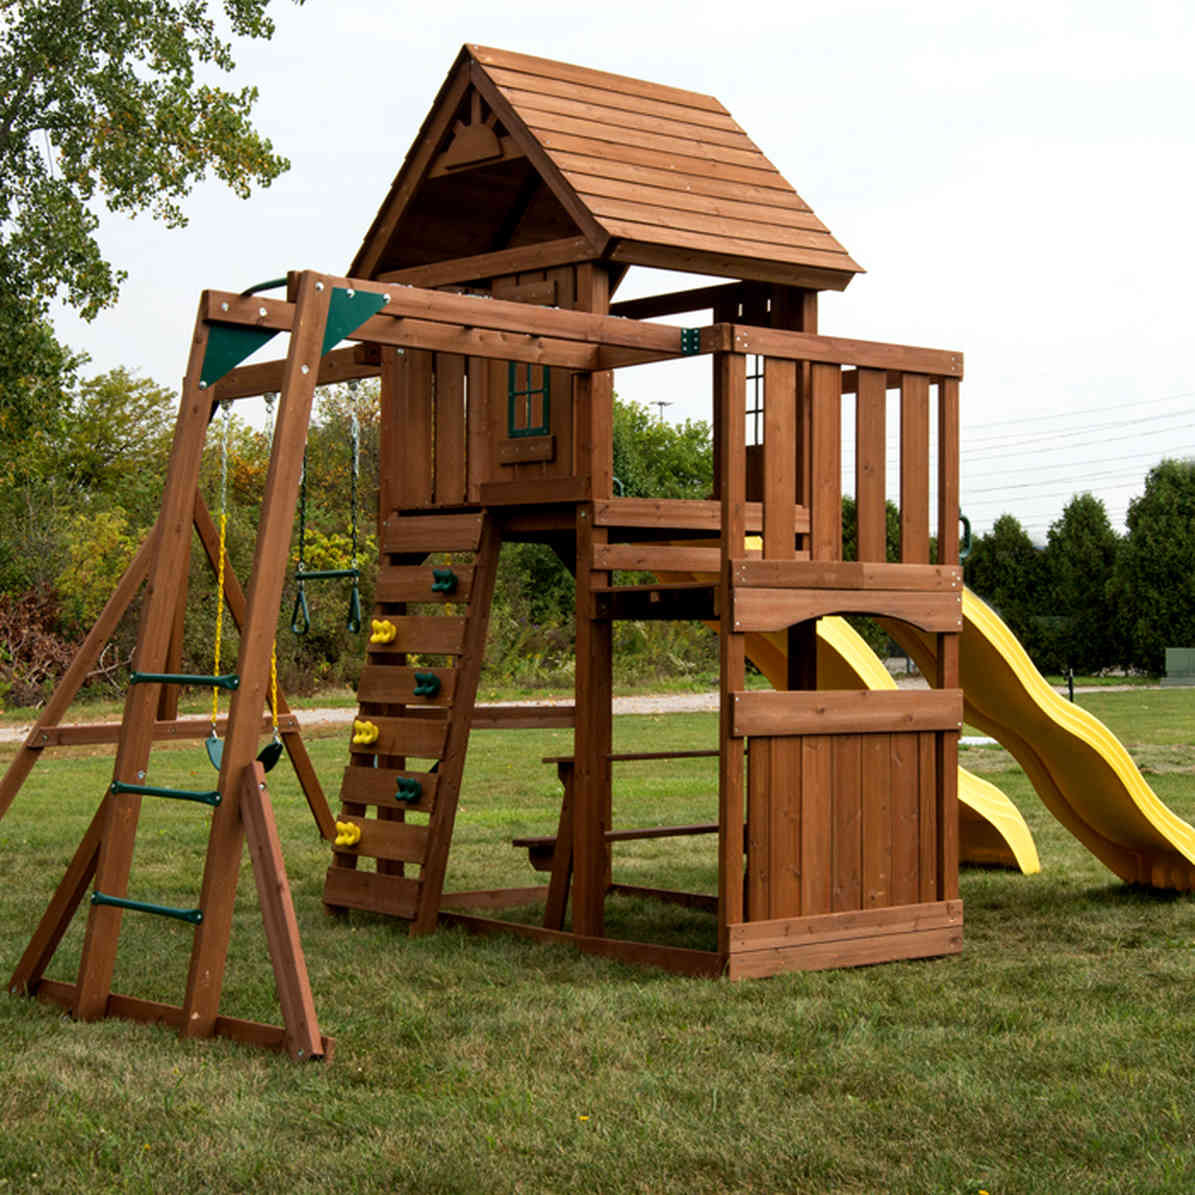 Timberview Complete Swing Set (WS-8356) back view